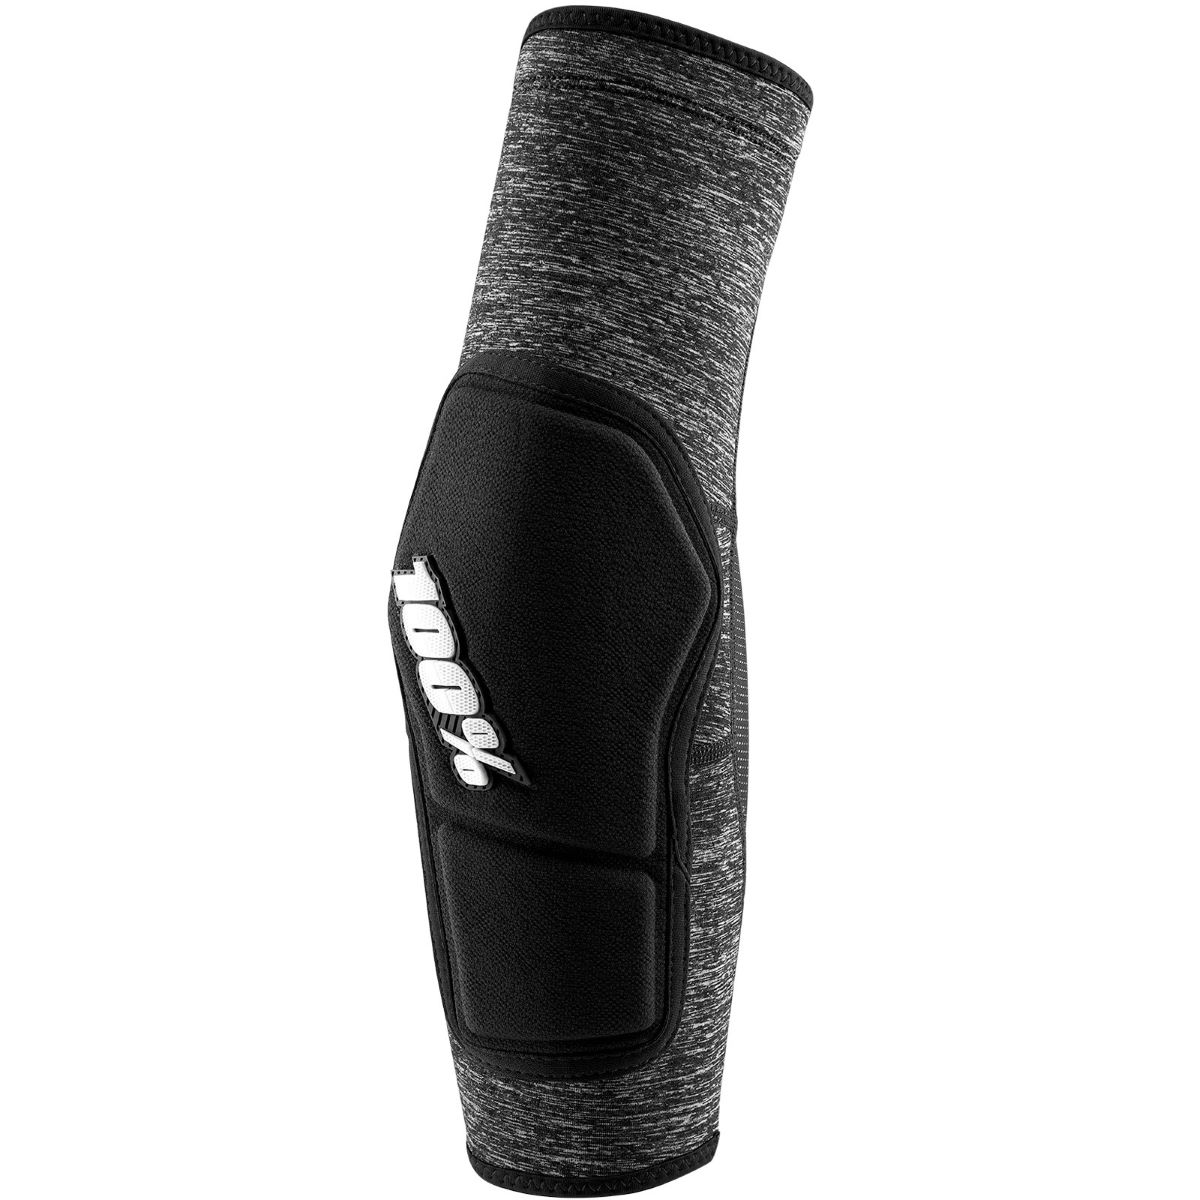 100% Ridecamp Elbow Guard - Xl Grey/black  Elbow Pads